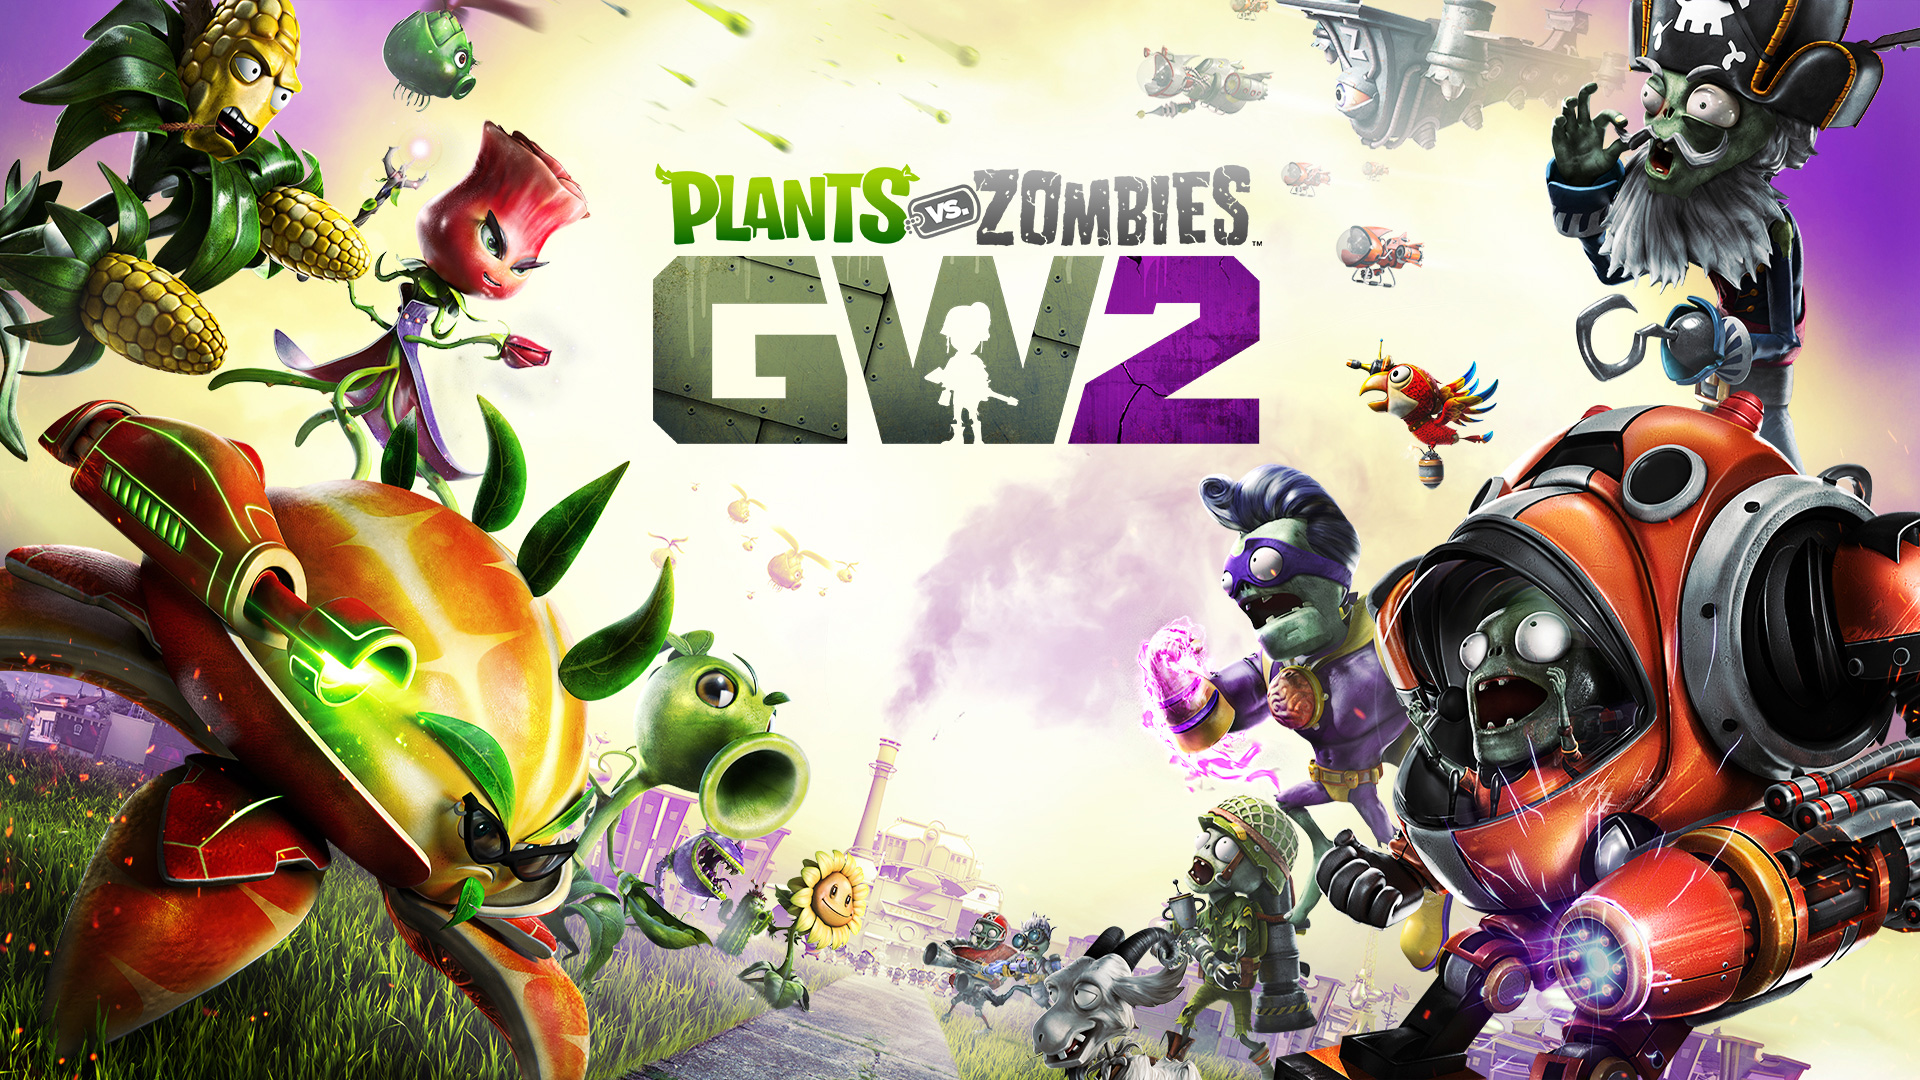 Here we will show you how to unlock all Plants VS Zombies: Garden Warfare 2 codes with a cheats list that's valid for the PC, PS4 & Xbox One versions.